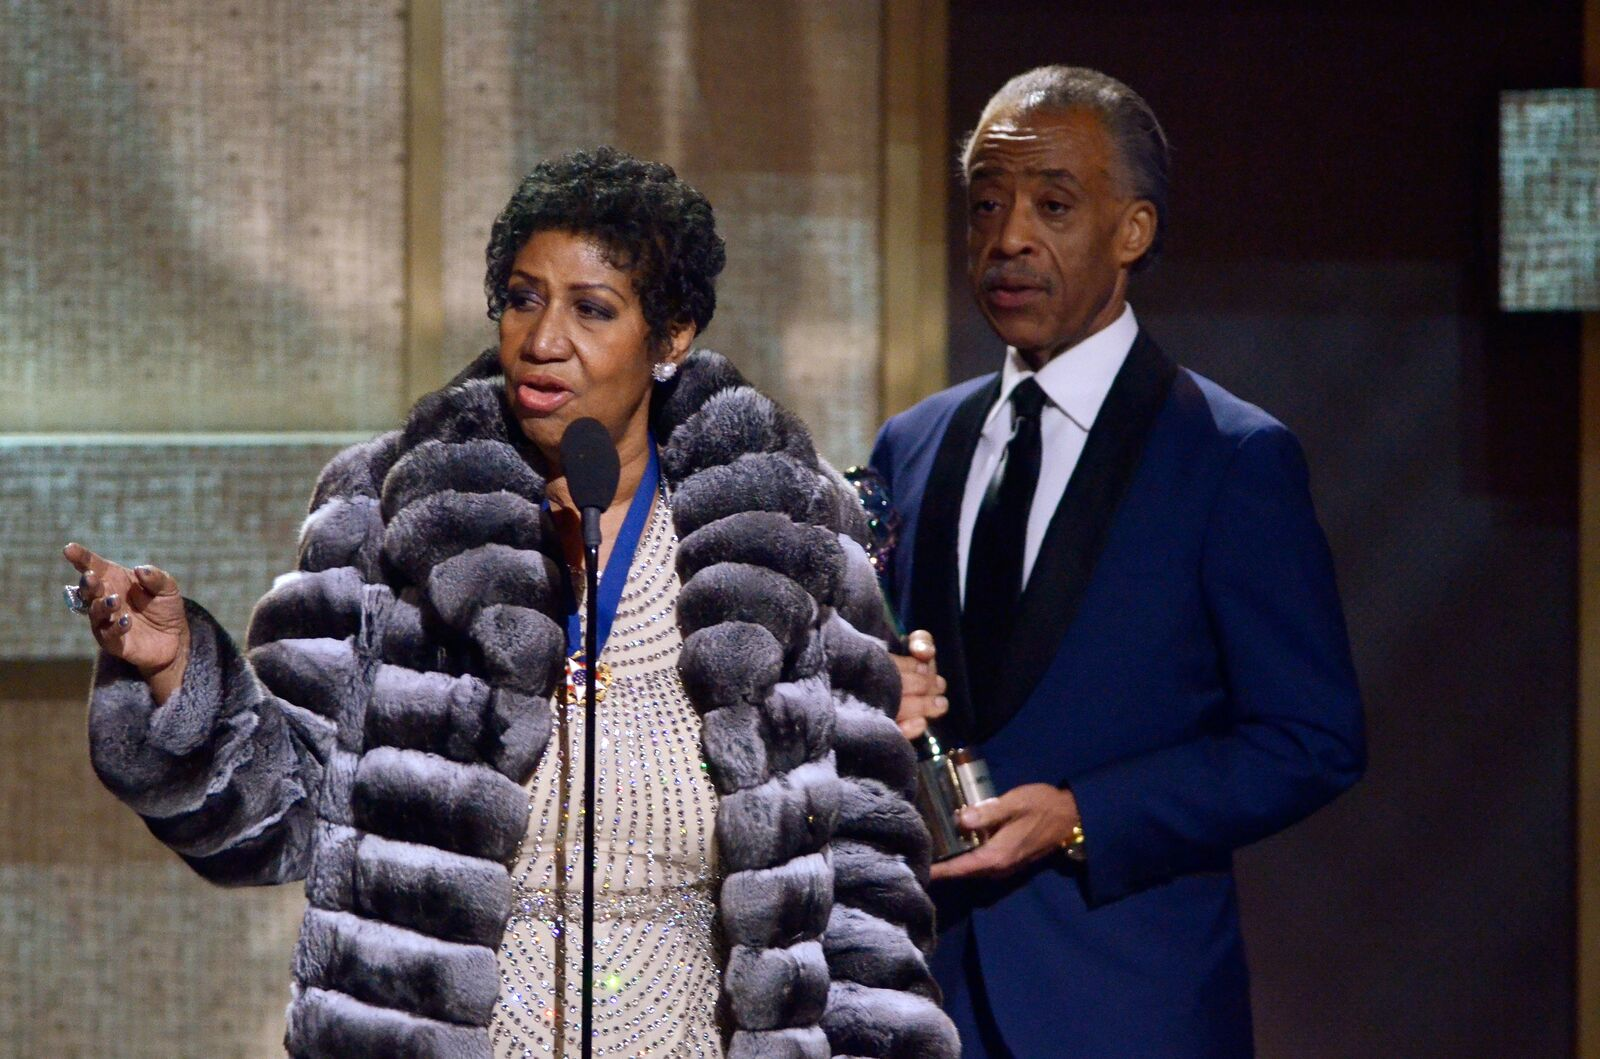 Aretha Franklin speaking on-stage | Source: Getty Images / GlobalImagesUkraine